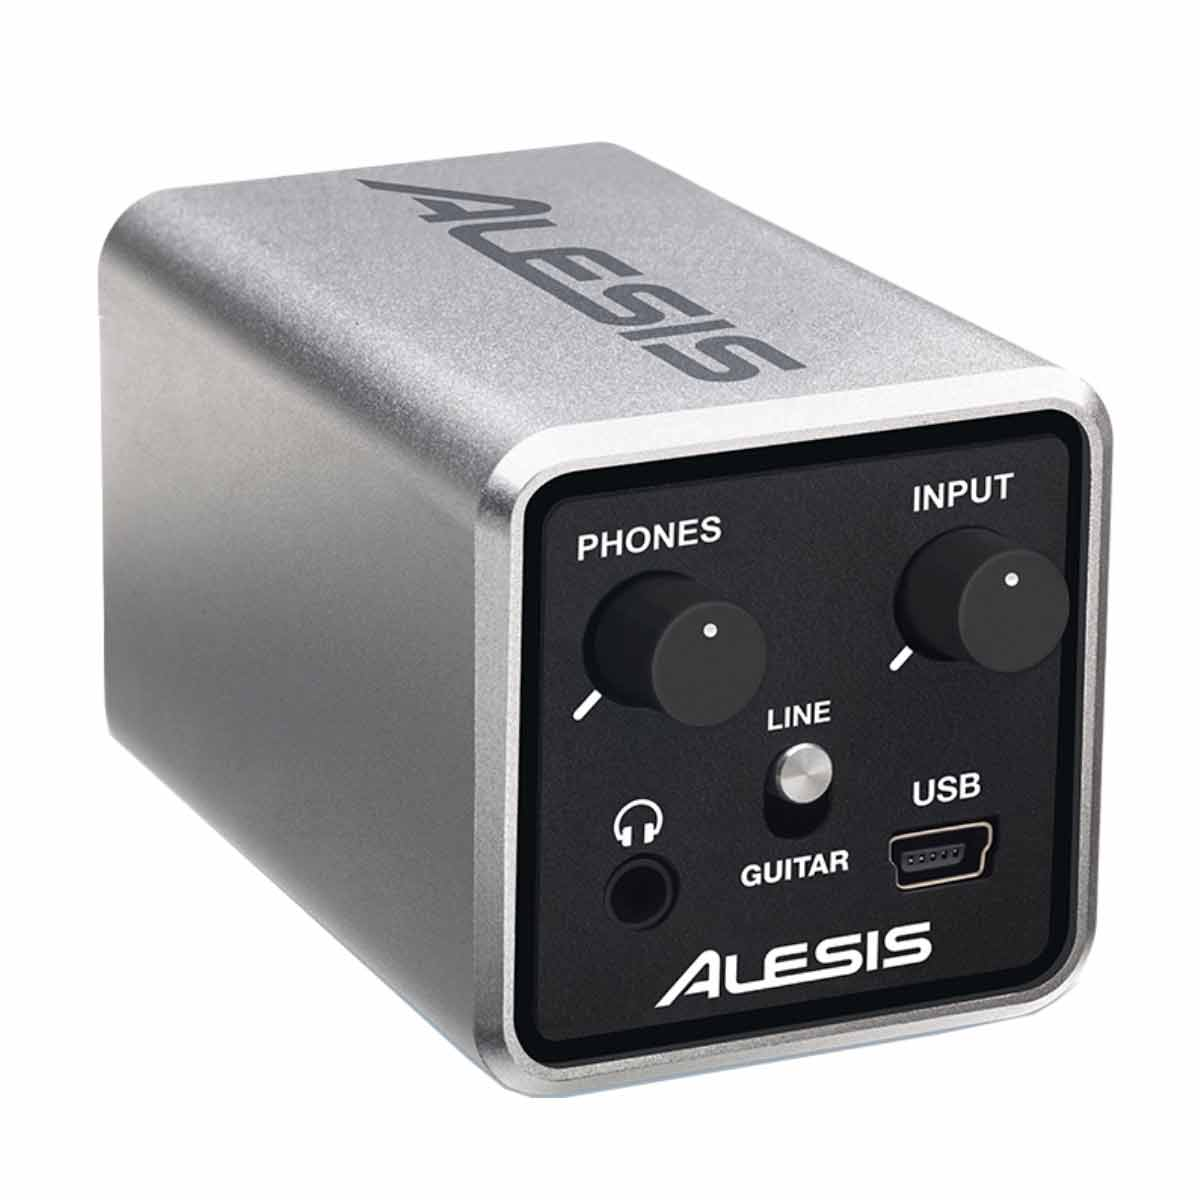 CORE1 - Interface de �udio Port�til USB CORE 1 - Alesis